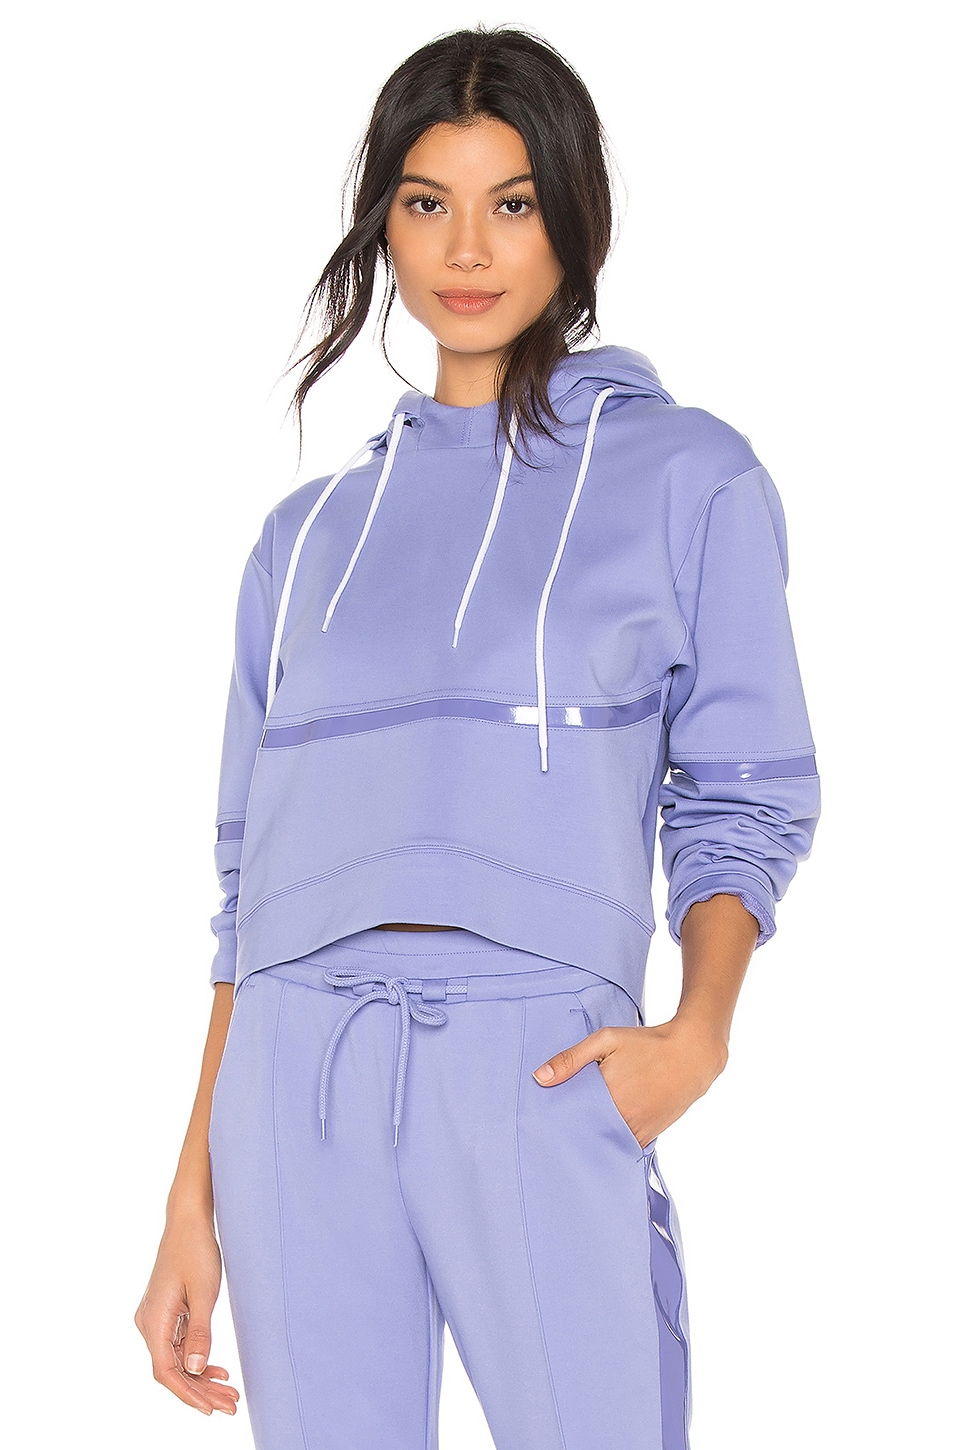 Nylora Lowell Top in Periwinkle